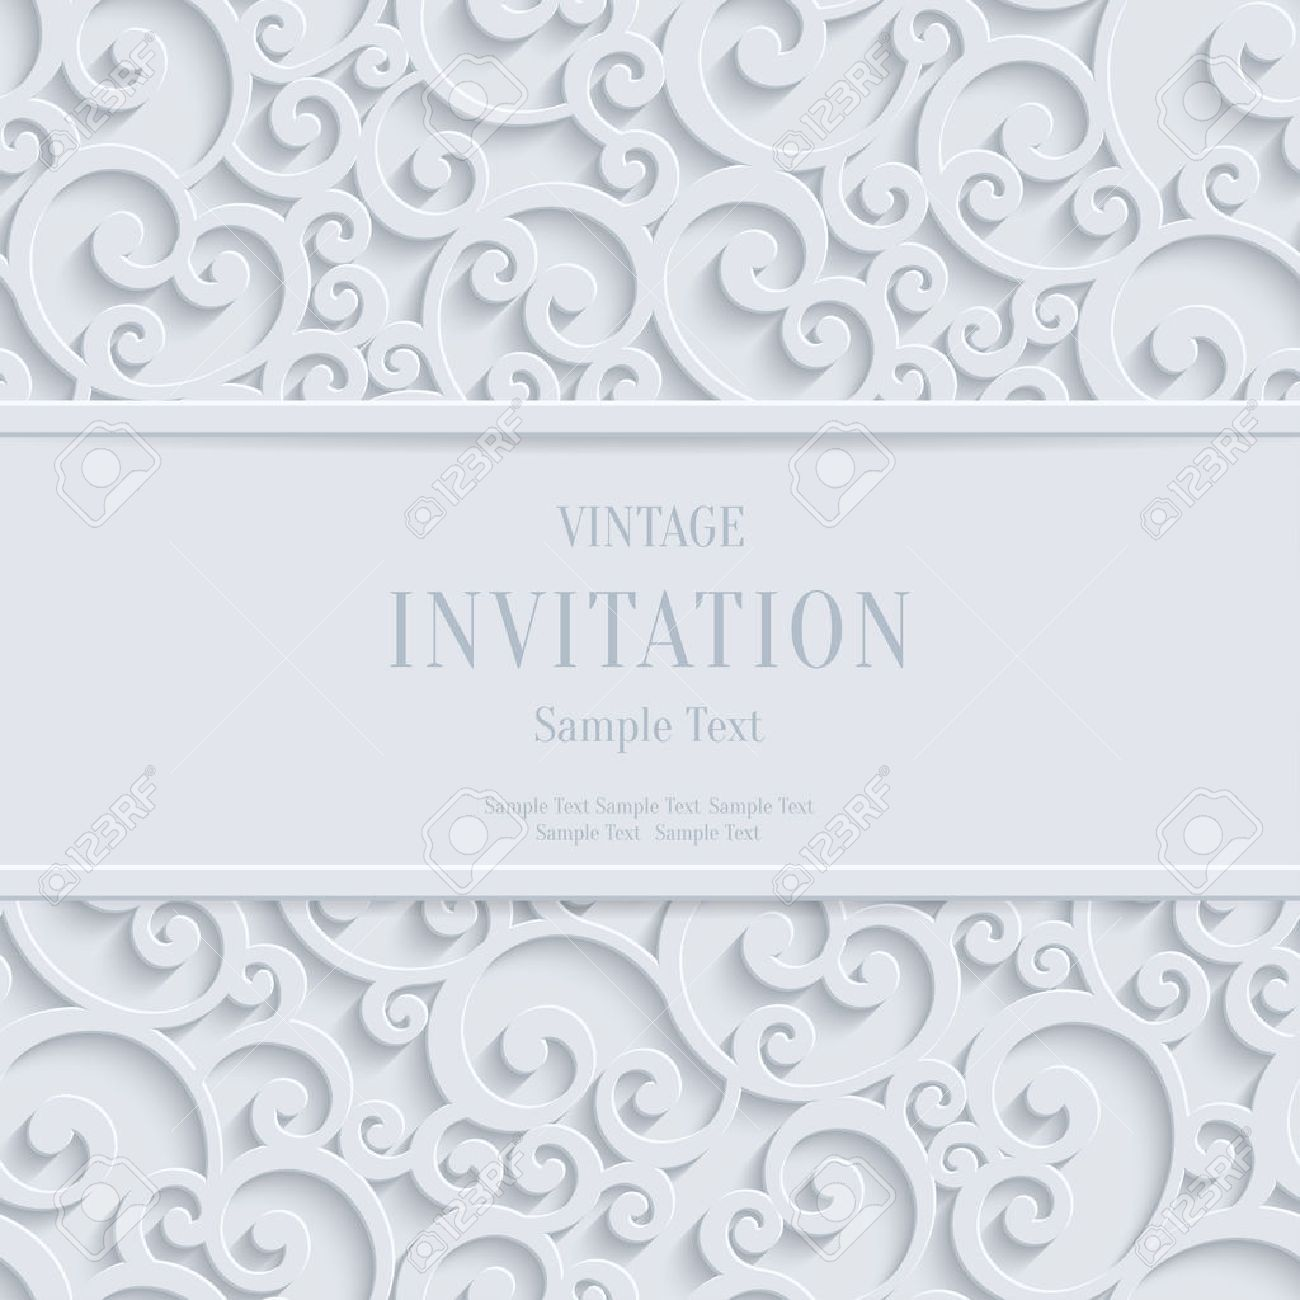 Floral swirl vector white 3d christmas or weddind invitation cards banco de imagens floral swirl vector white 3d christmas or weddind invitation cards background with curl damask pattern stopboris Image collections